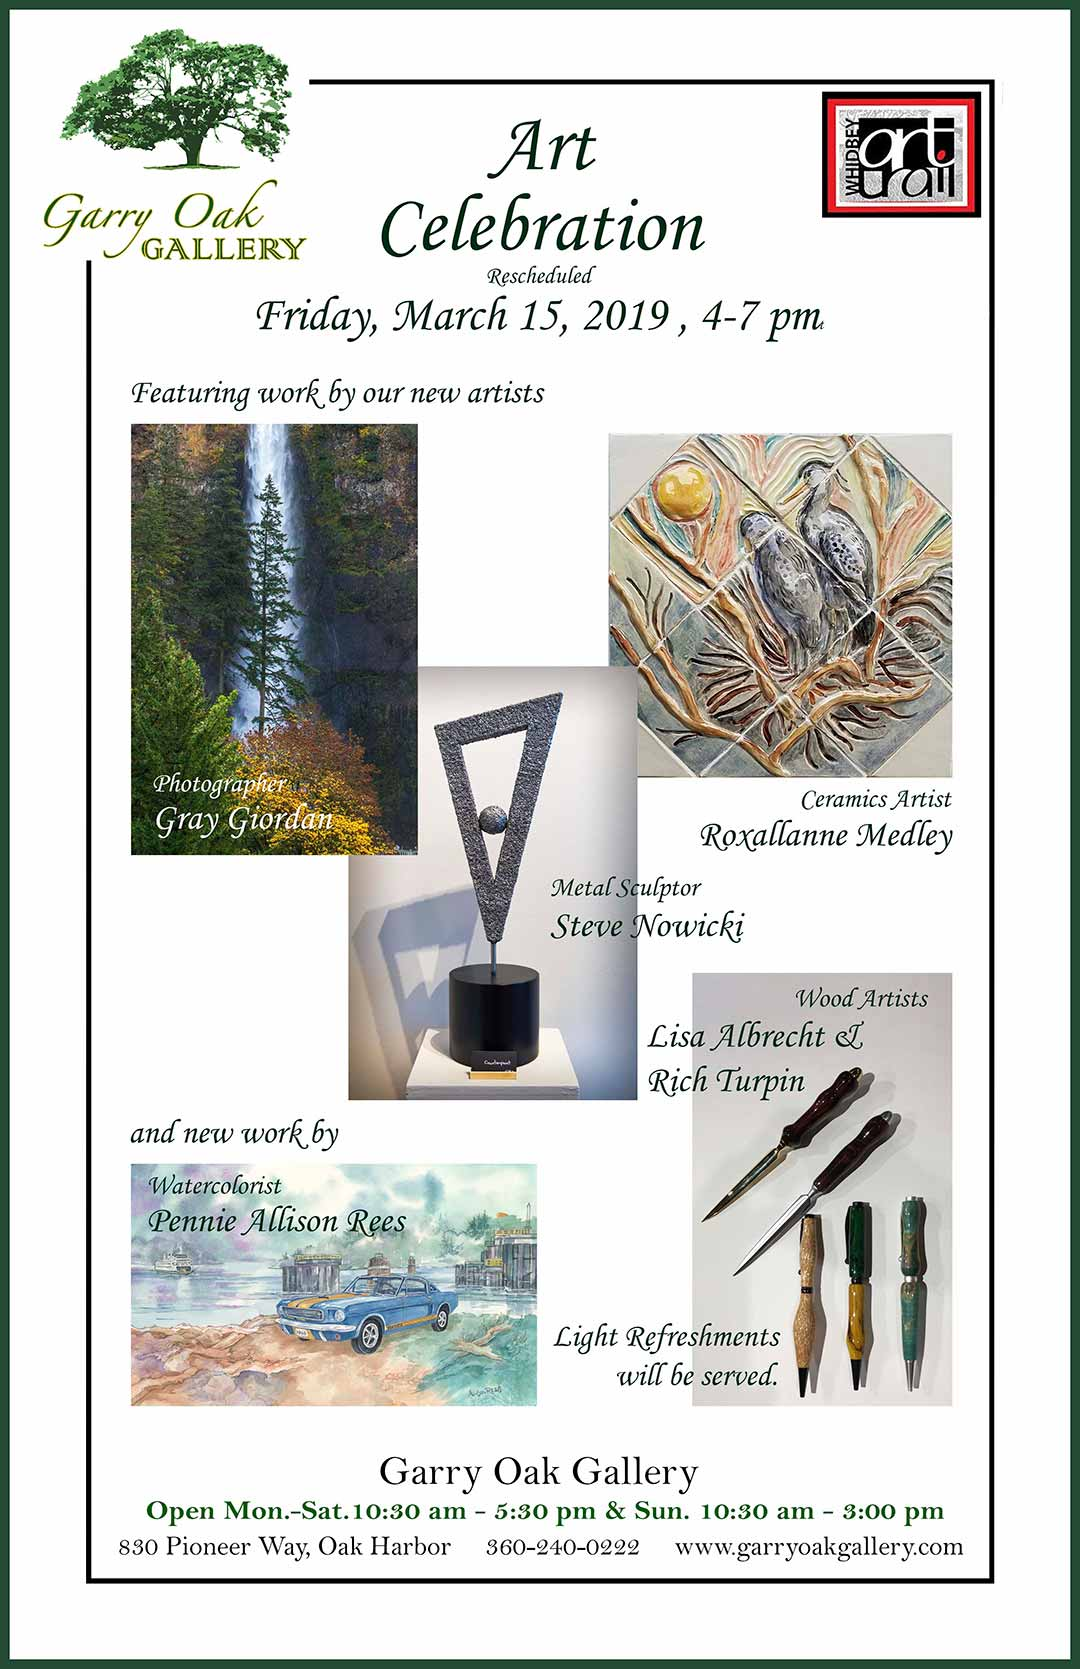 Poster showing artwork to be celebrated at the Garry Oak Gallery